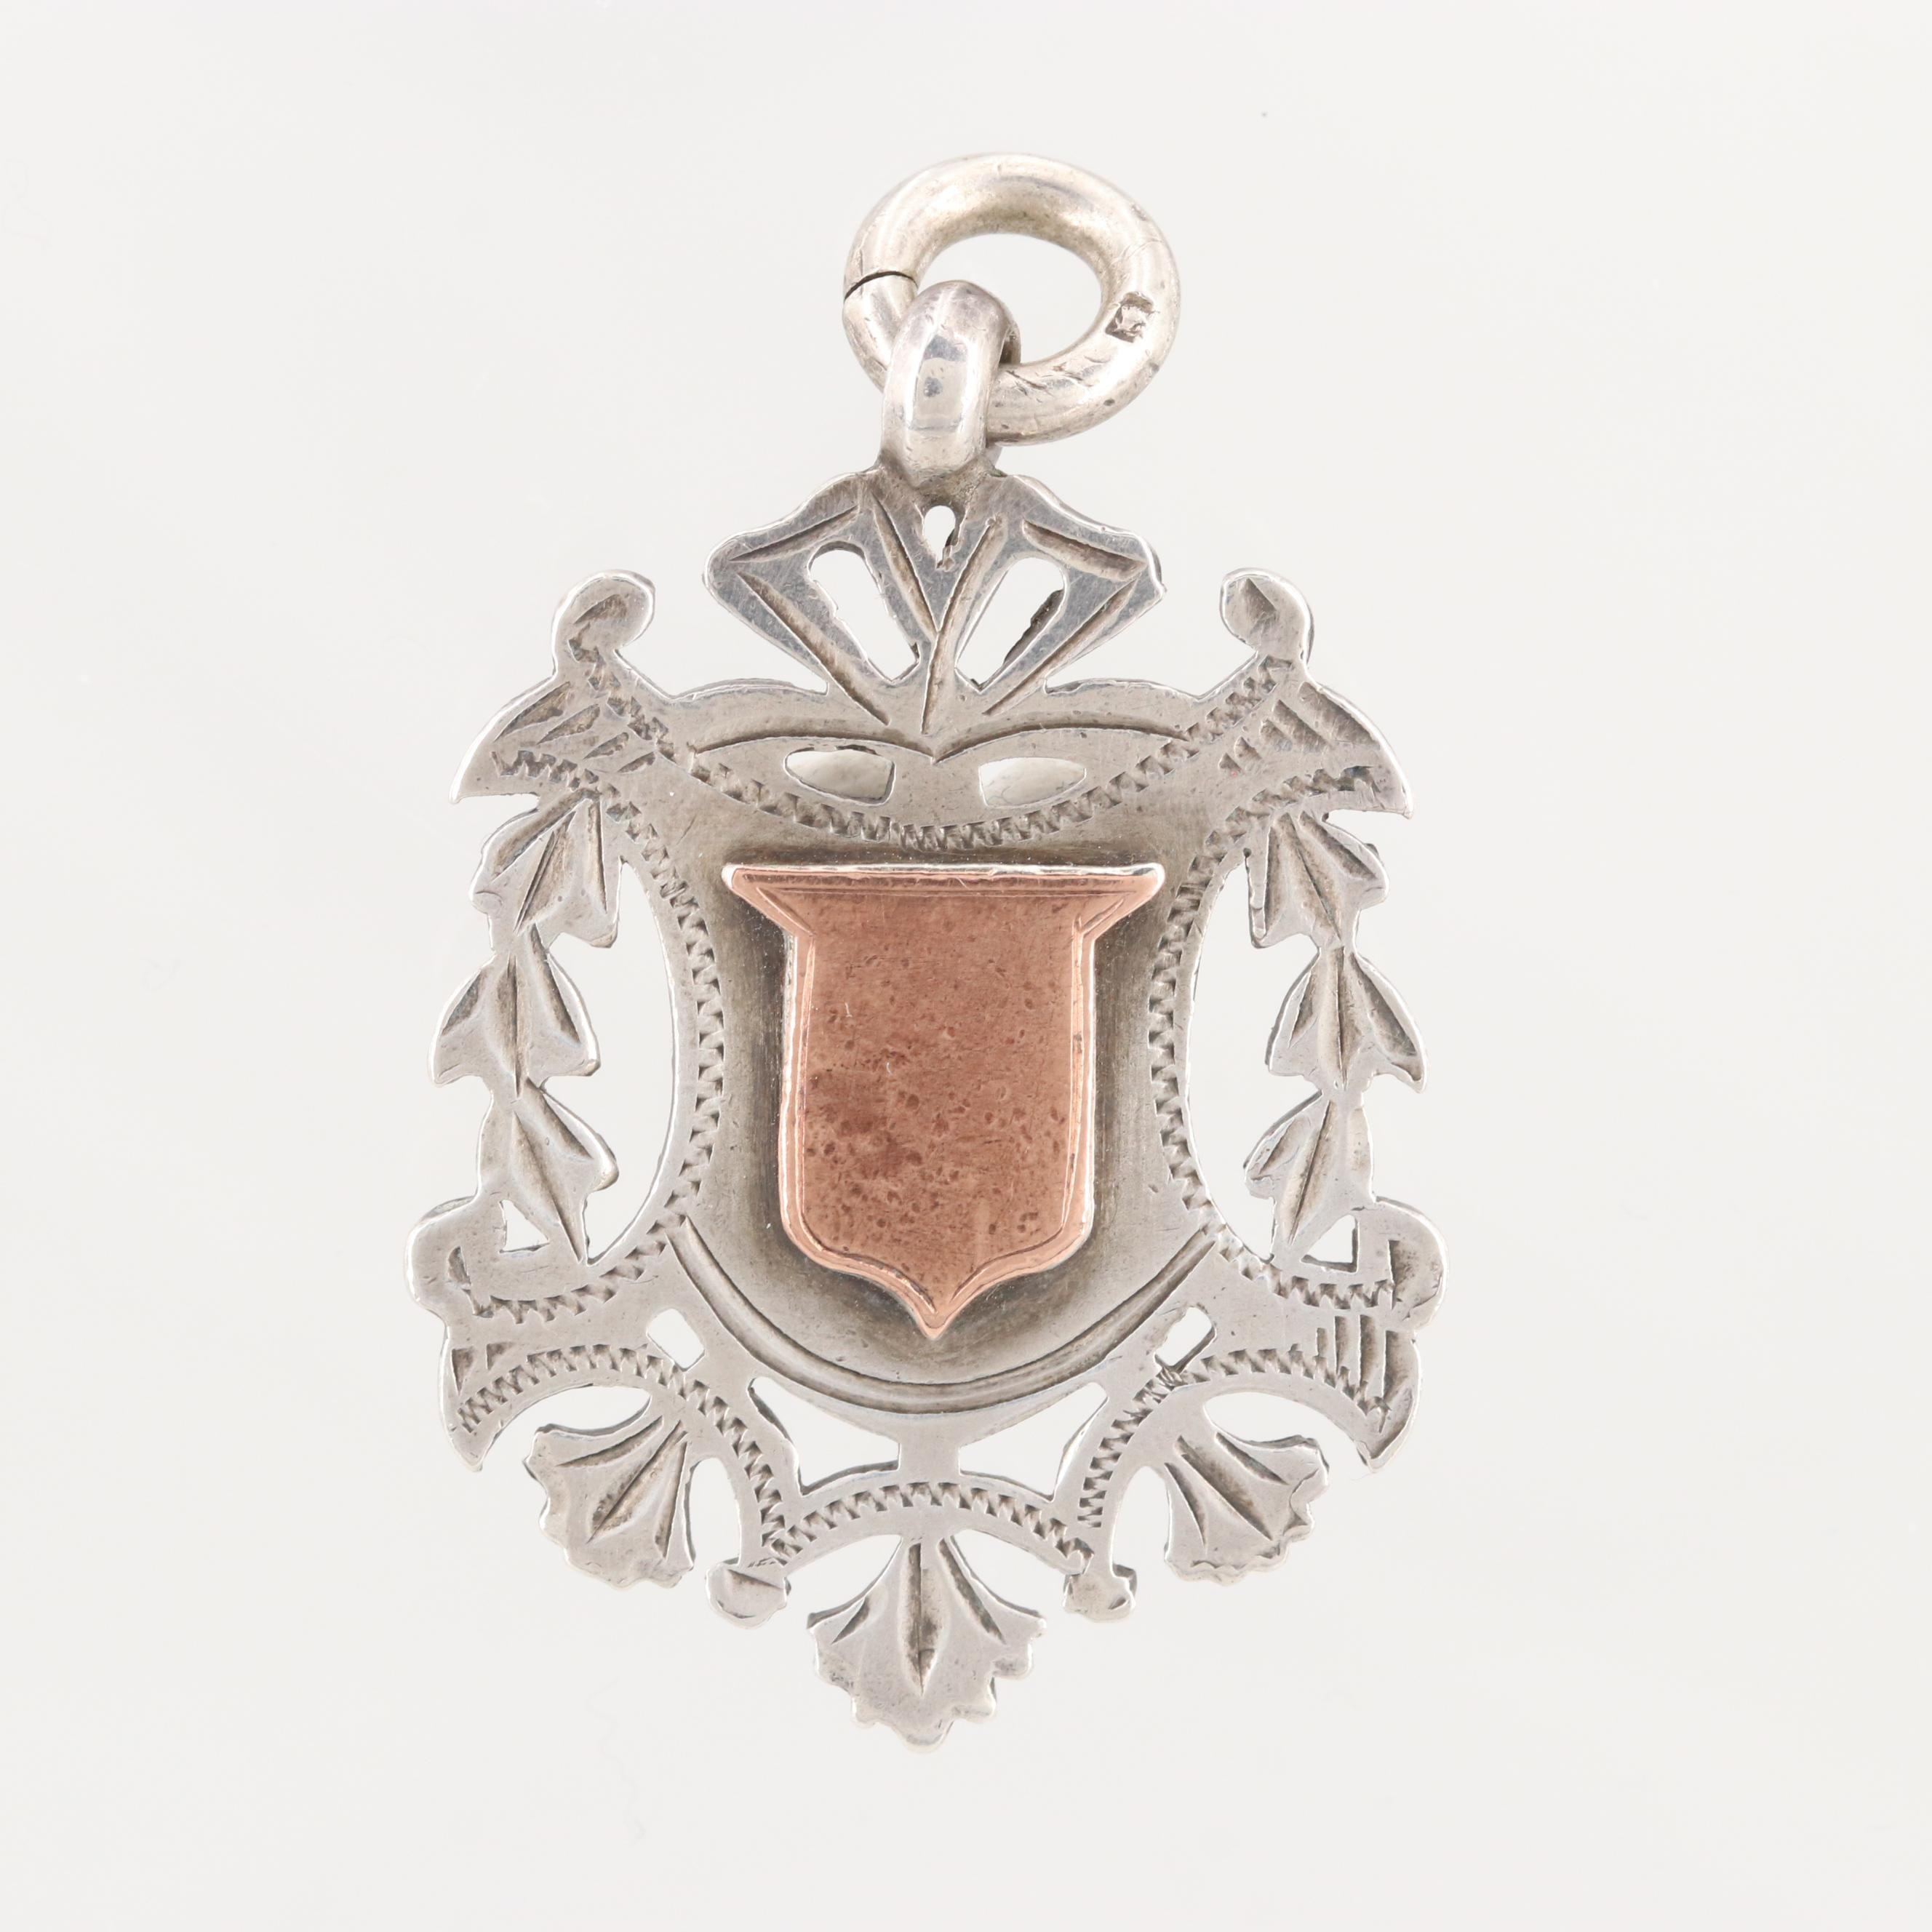 Circa 1900s Henry Pope Sterling Silver Charm